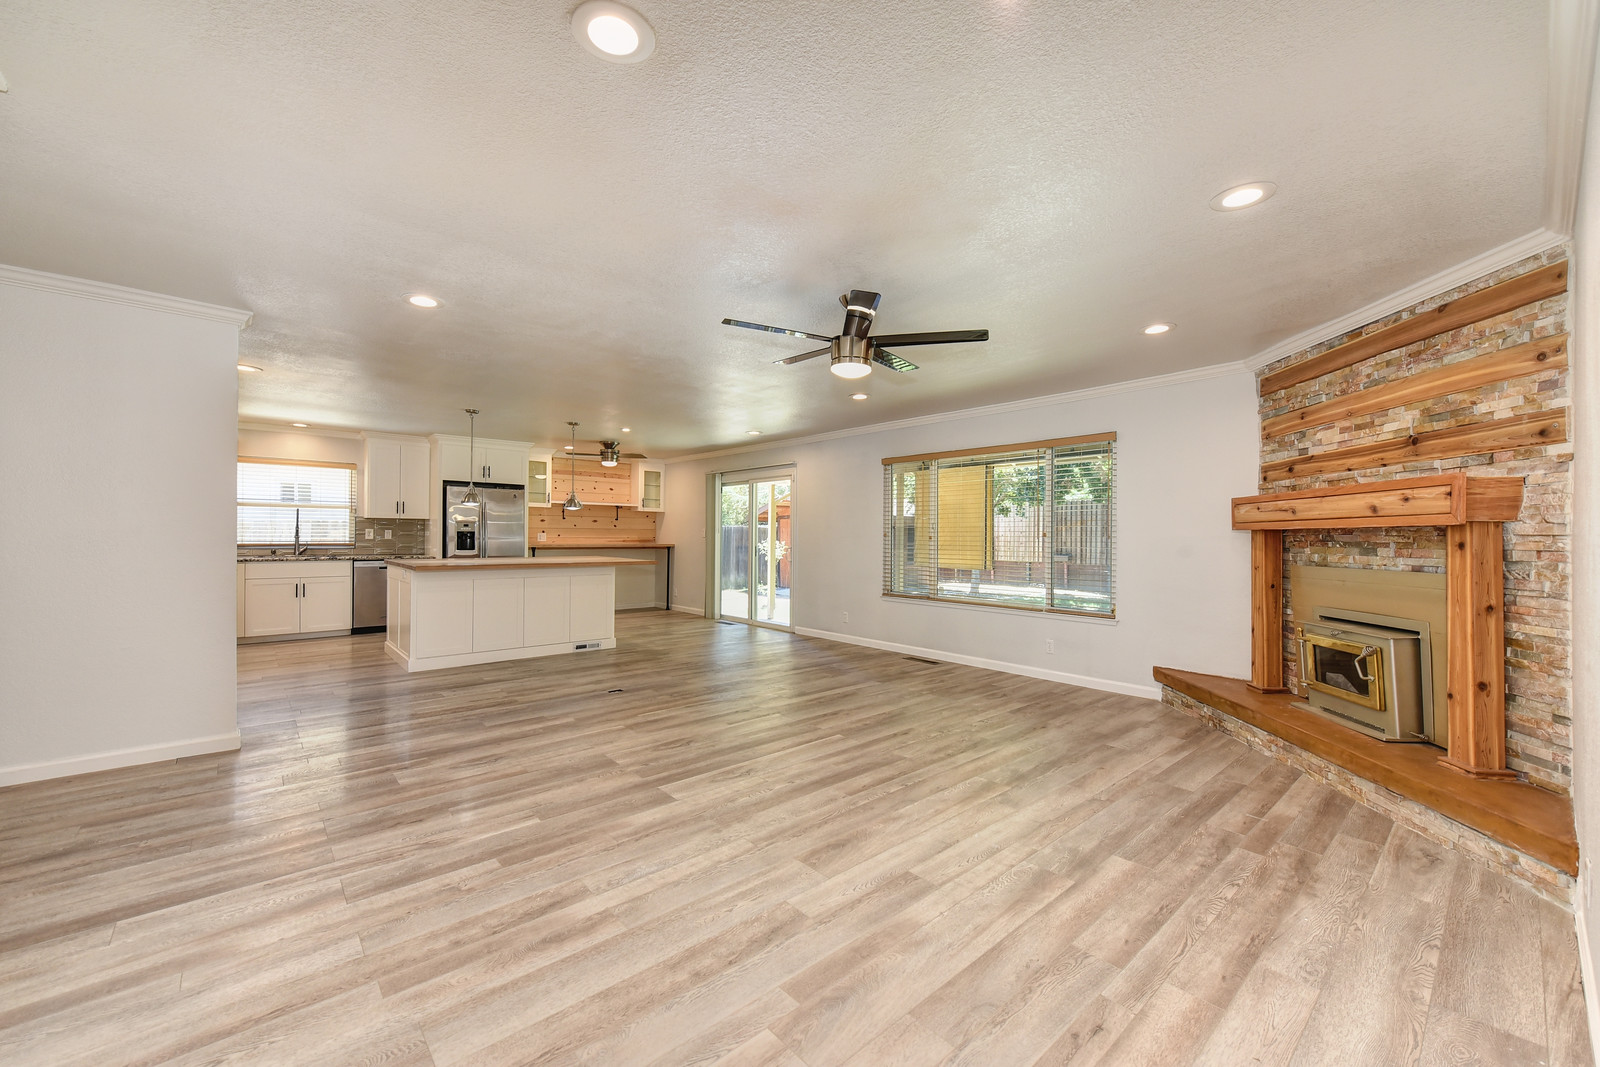 5342 Nyoda Way Living Room | Experienced Carmichael California real estate agent Jesse Coffey with Keller Williams Realty